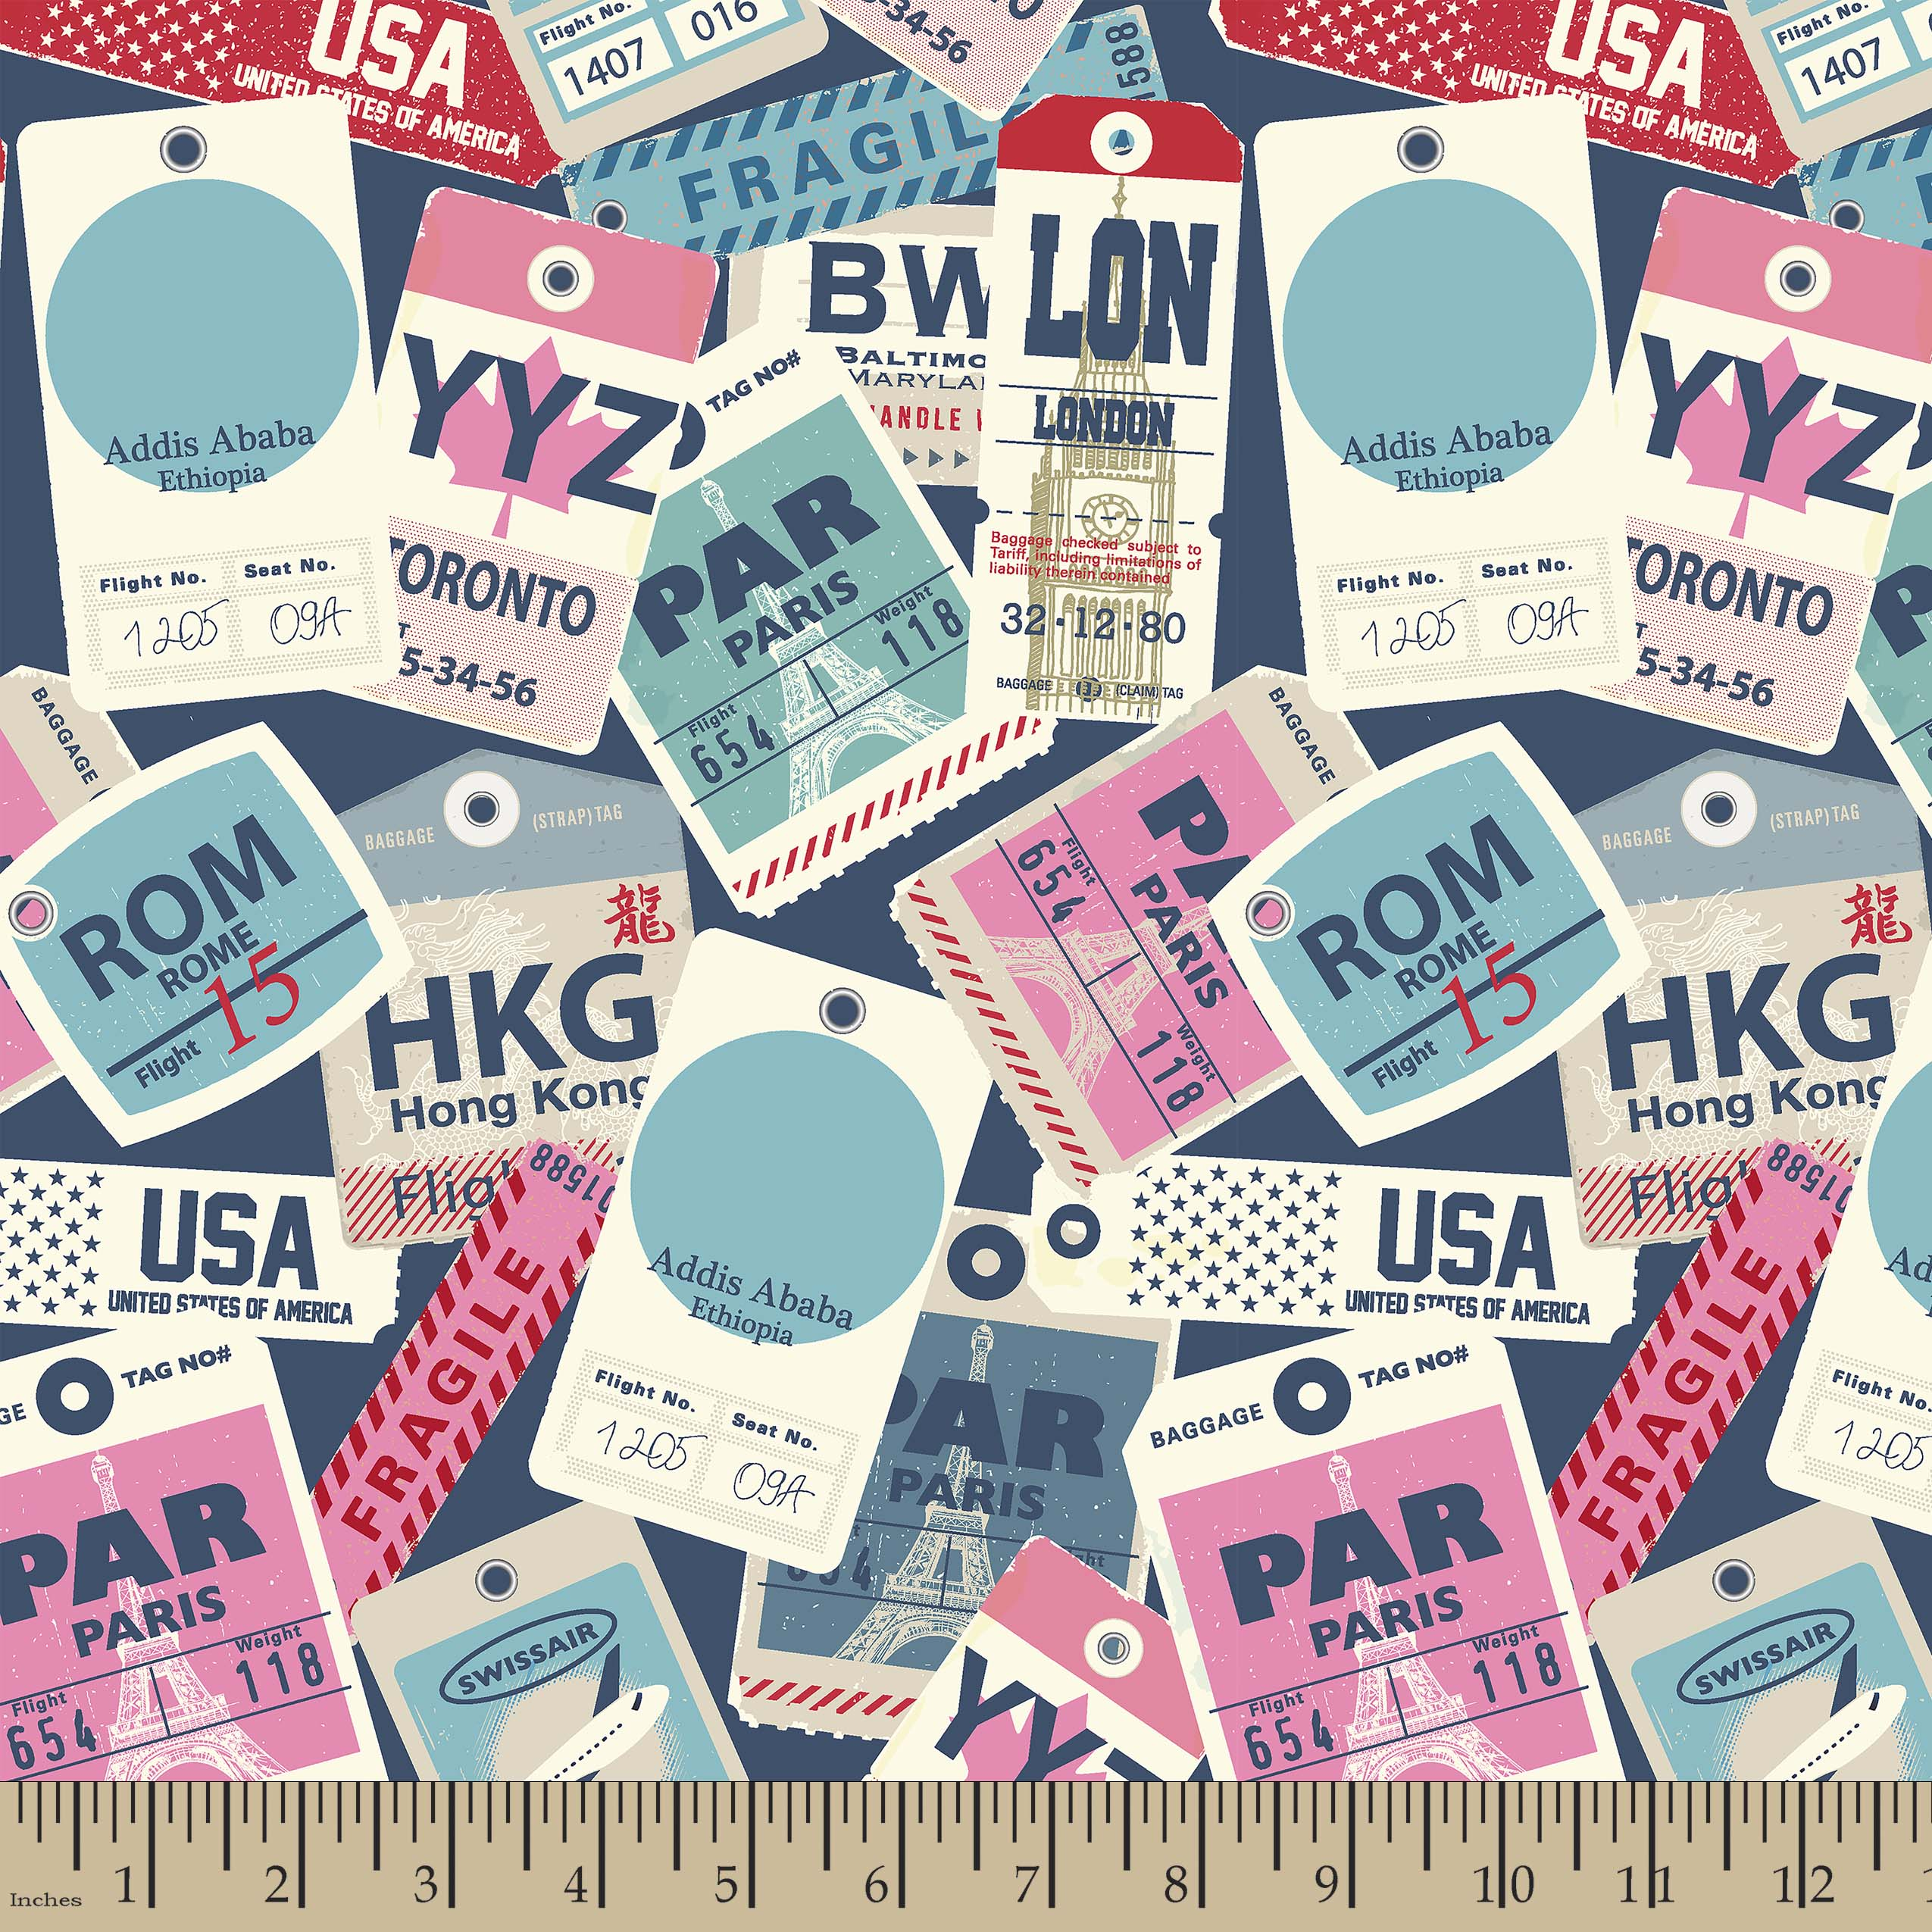 Baggage Tag Print Fabric